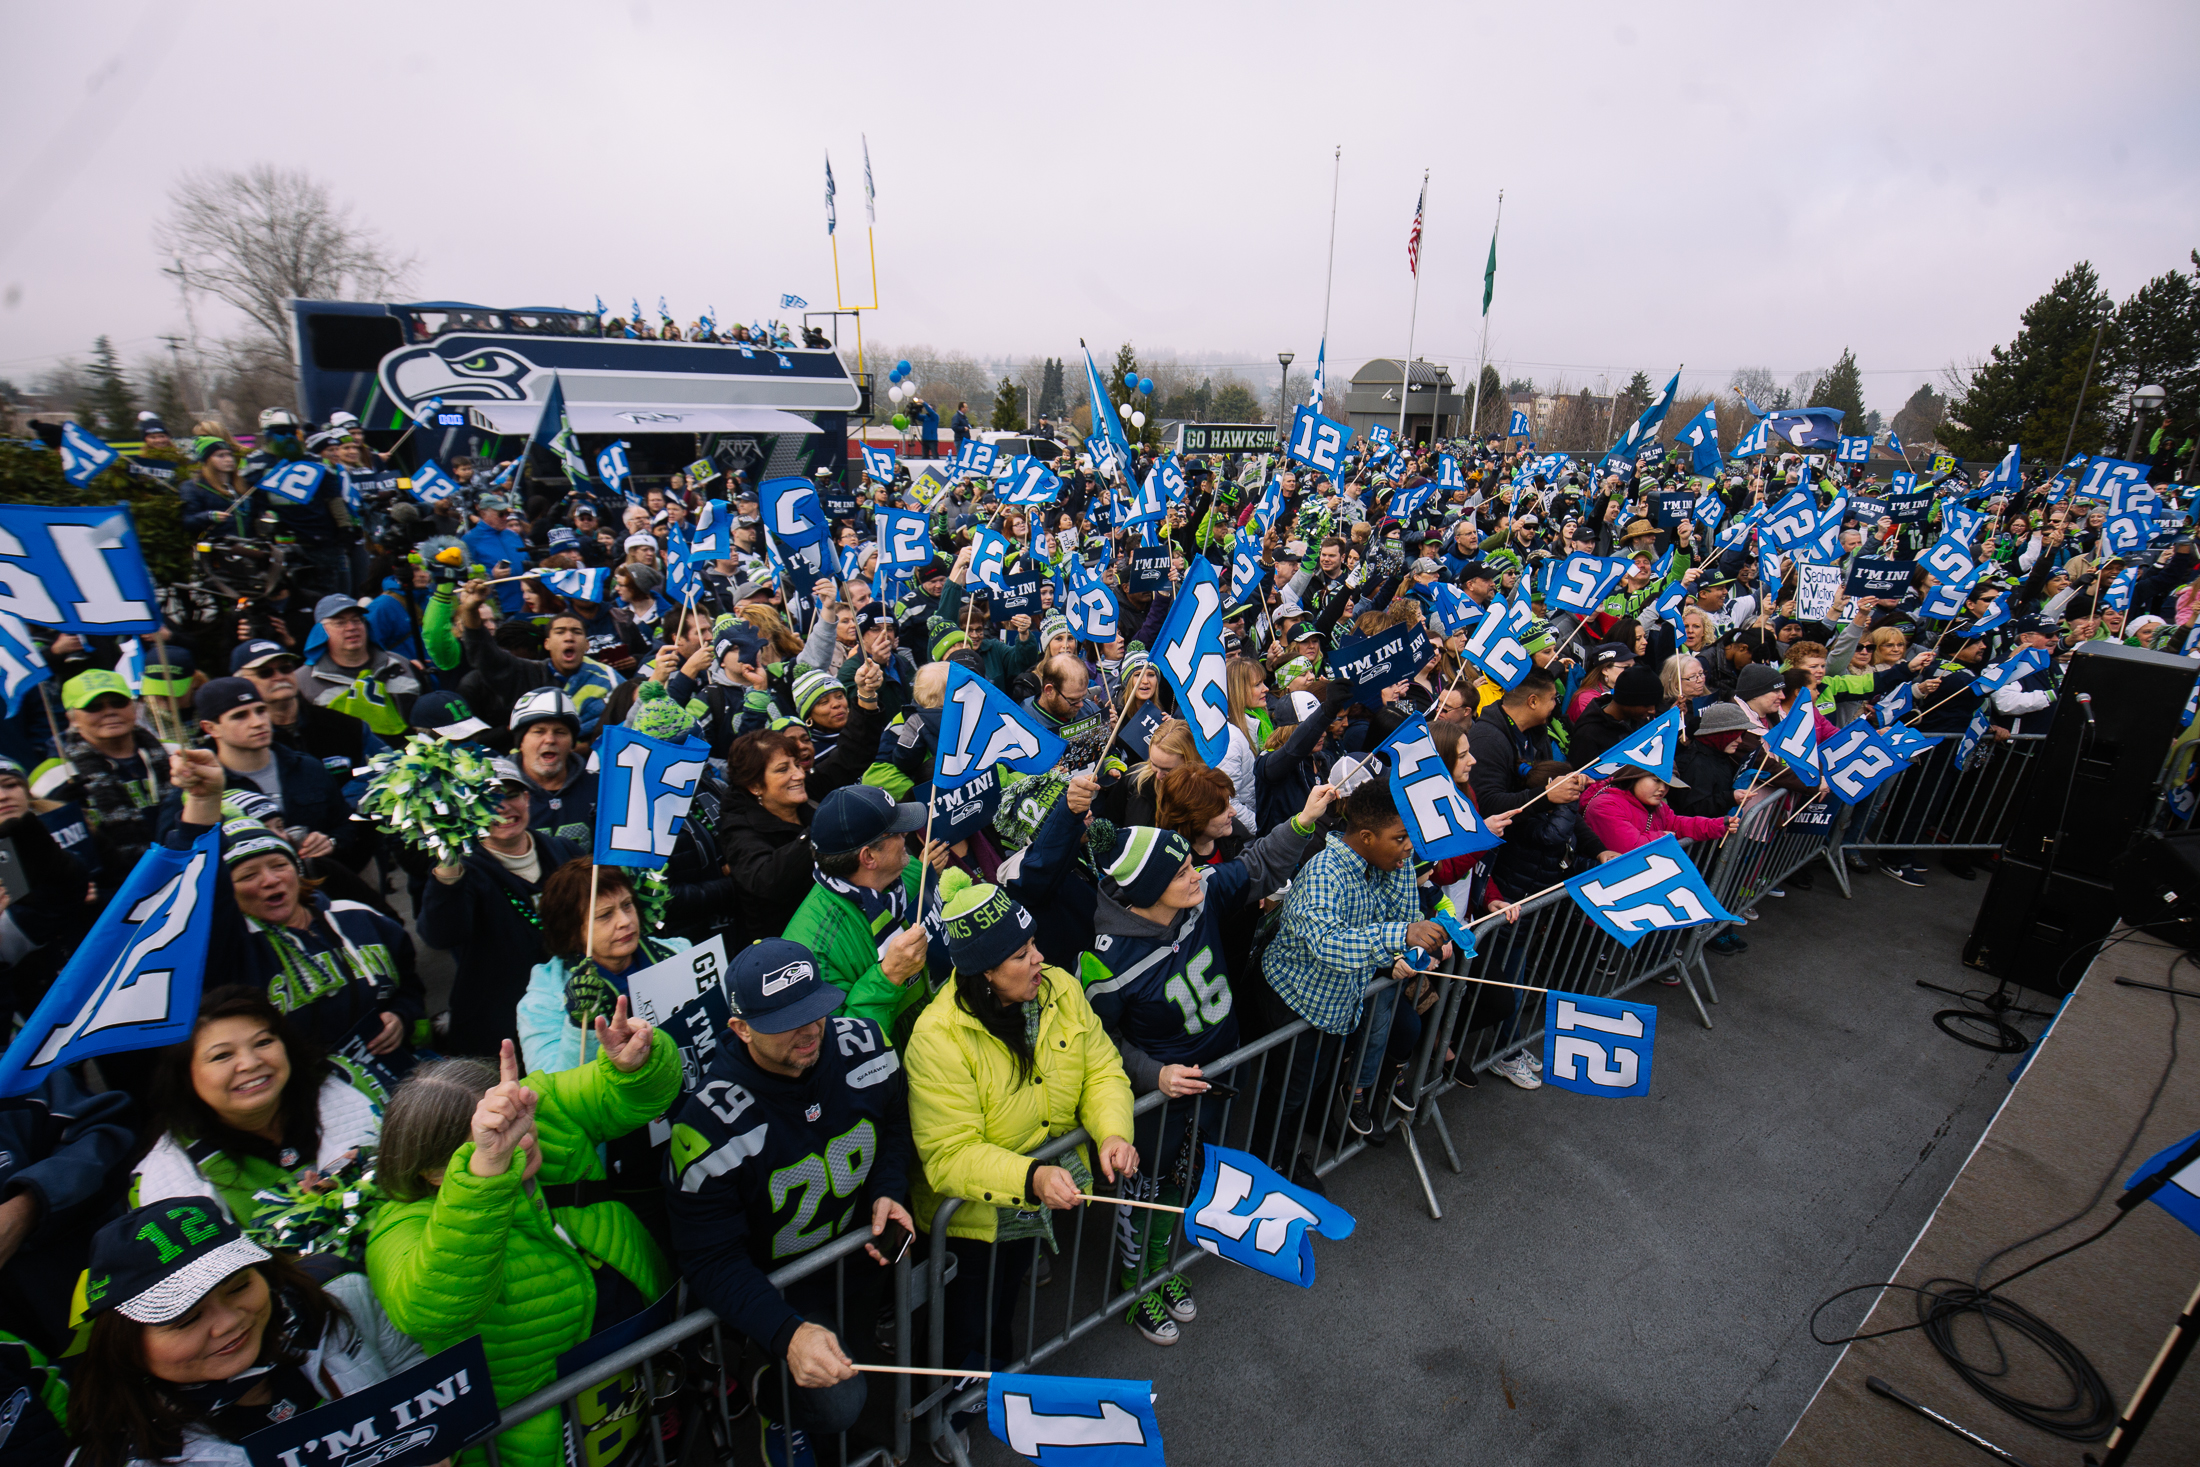 Hundreds of 12s came out to a Blue Friday Seahawks rally at Renton City Hall. The Seahawks hosted the rally before this weekends wildcard playoff game against the Minnesota Vikings that featured Blue Thunder, The Sea Gals, and former Seahawks alumni including Marcus Trufant and Jordan Babineaux. (Joshua Lewis / Seattle Refined)